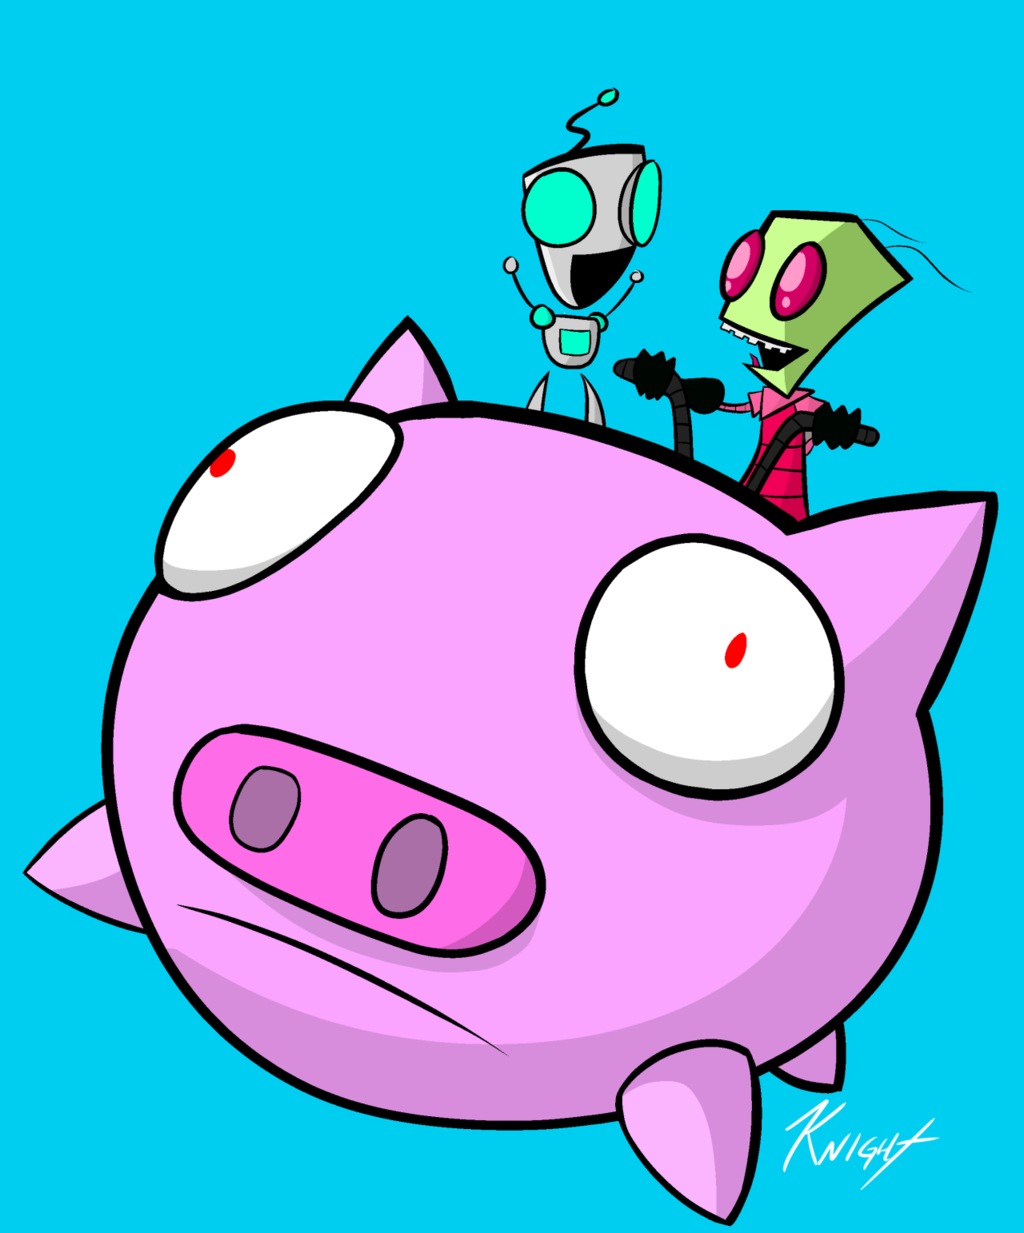 Most recent image: Happy Invaders - 1/18